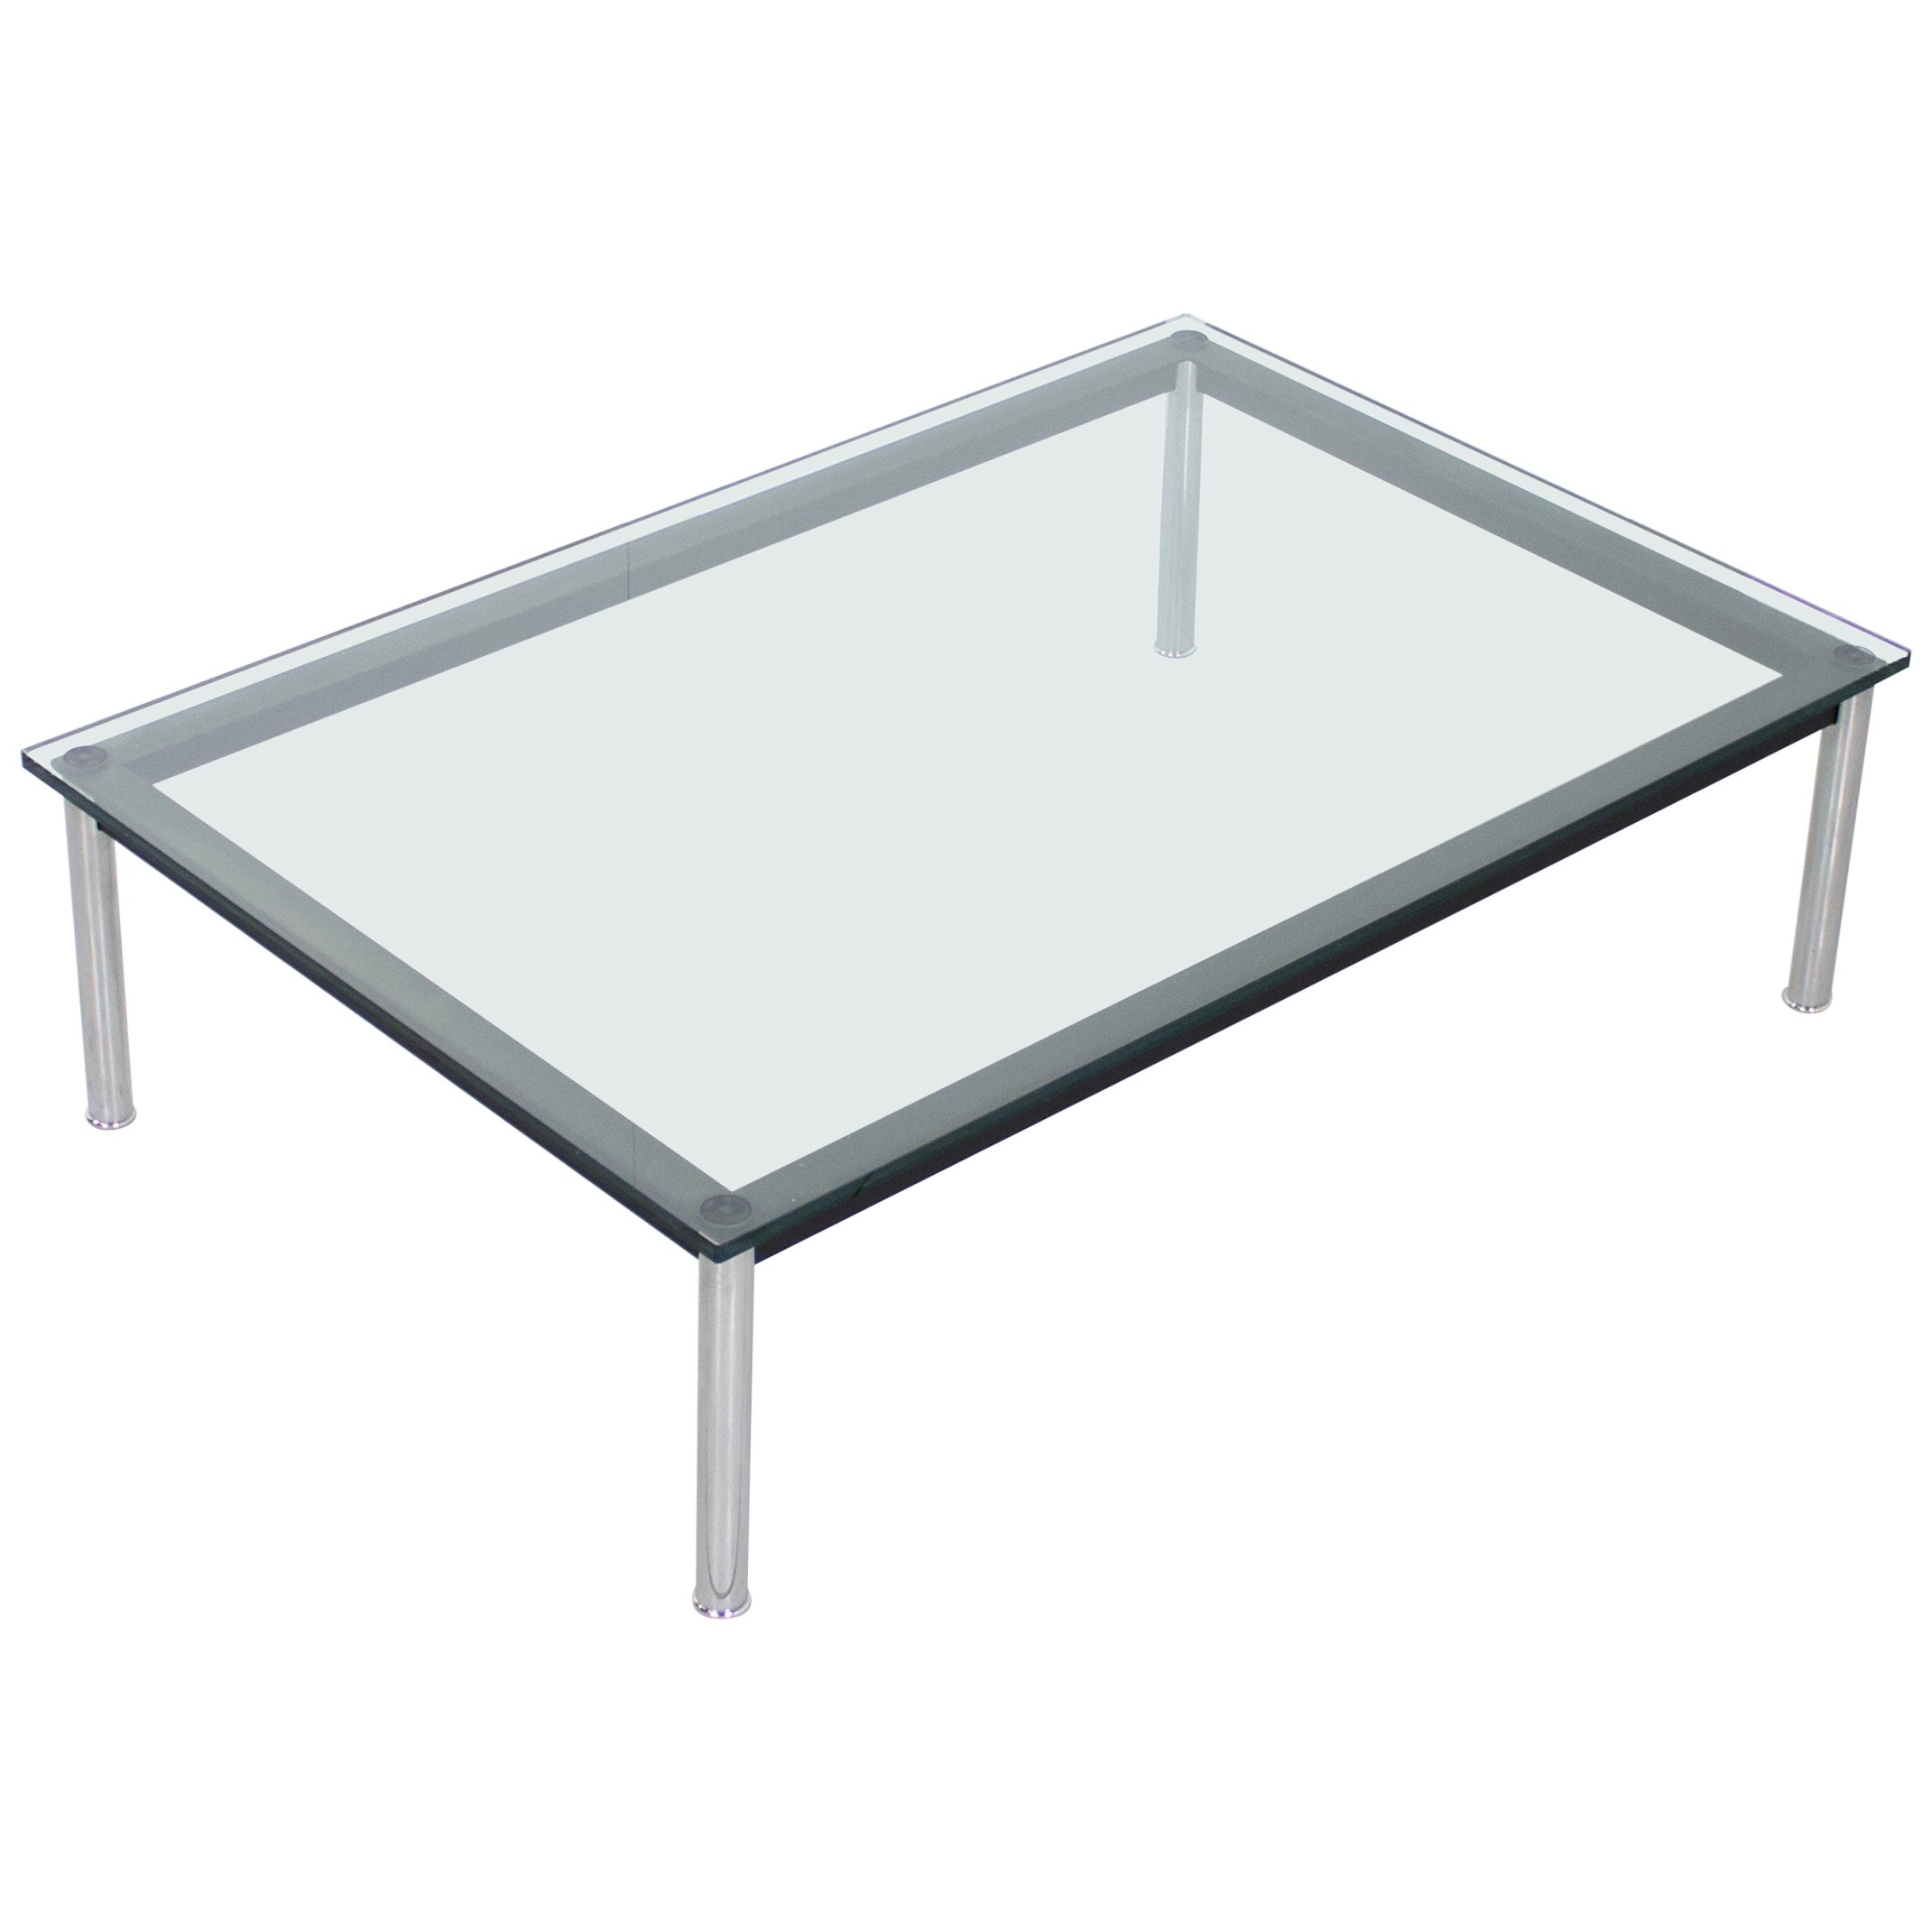 Coffee Table 'LC10' by Le Corbusier for Cassina, 1924